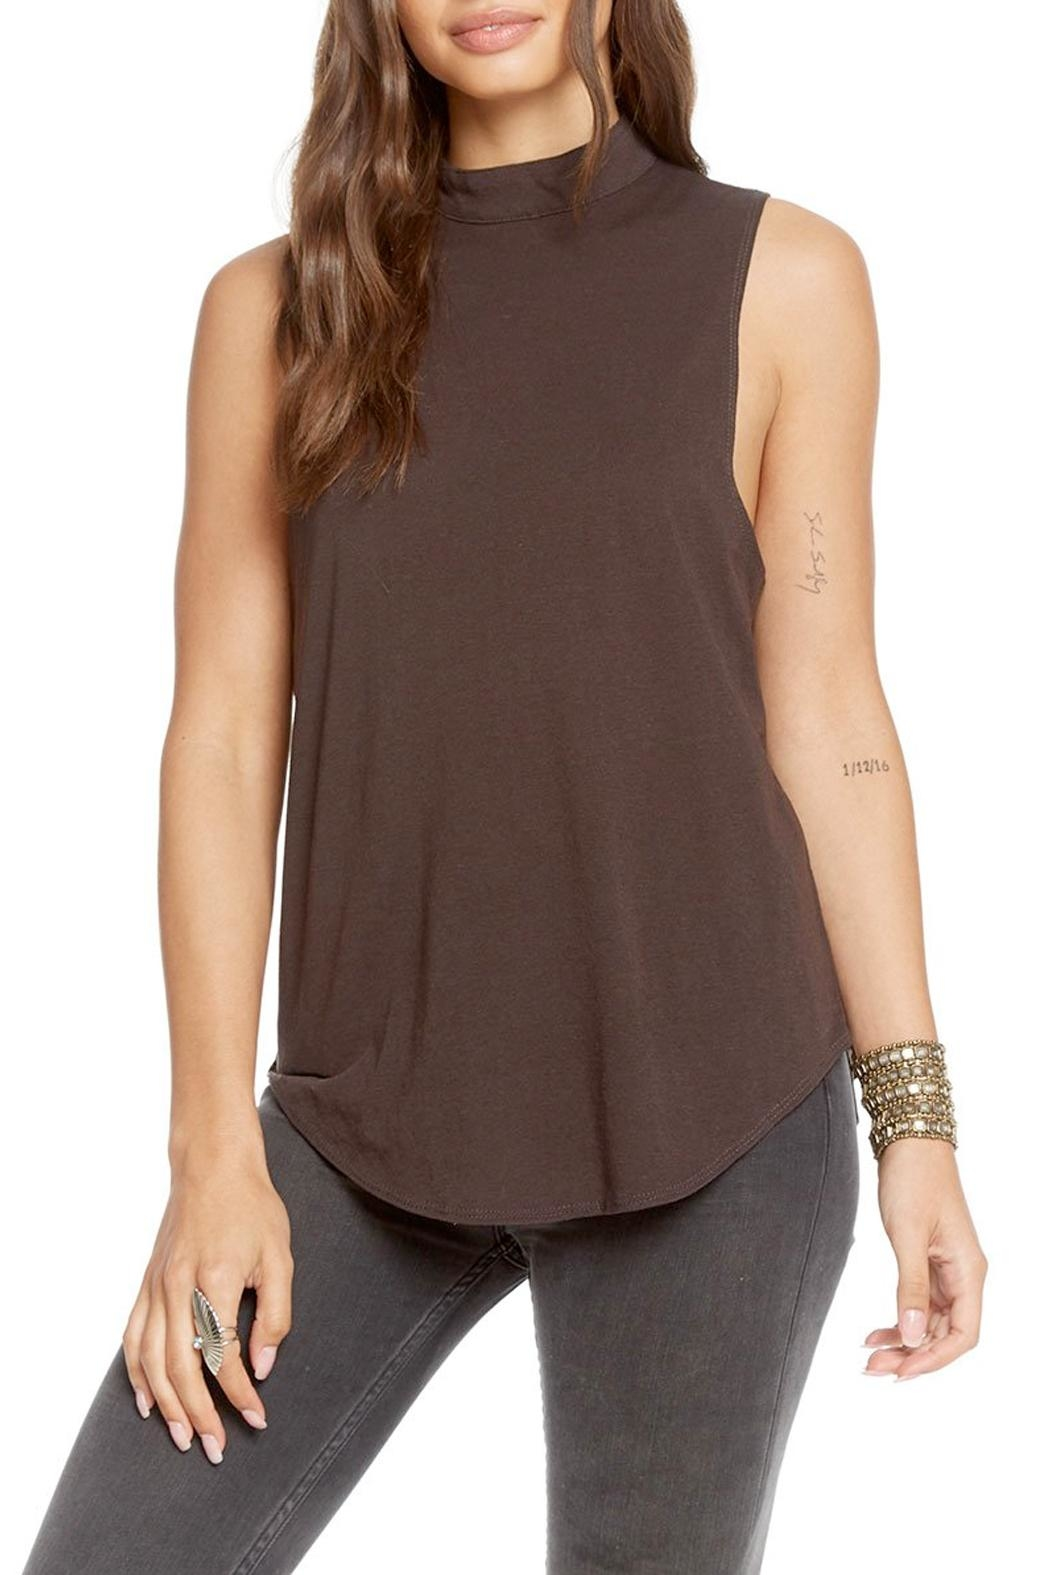 fa33c09fadd2c Chaser Mock Turtleneck Tank from California by pinkadot — Shoptiques